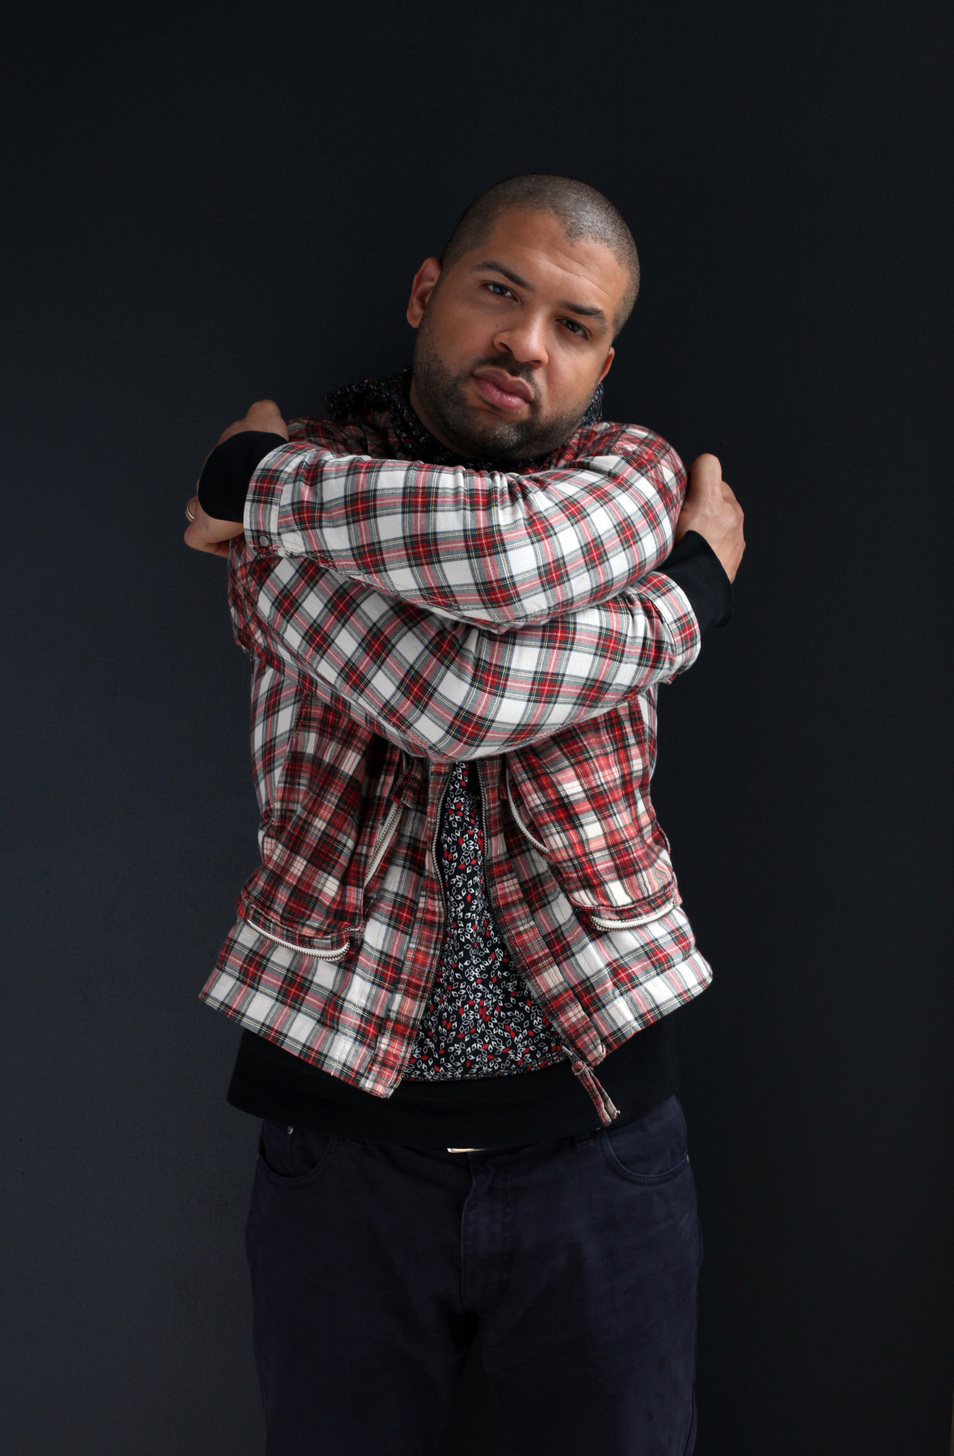 Kennedy Center Extends Jason Moran's Contract for Three